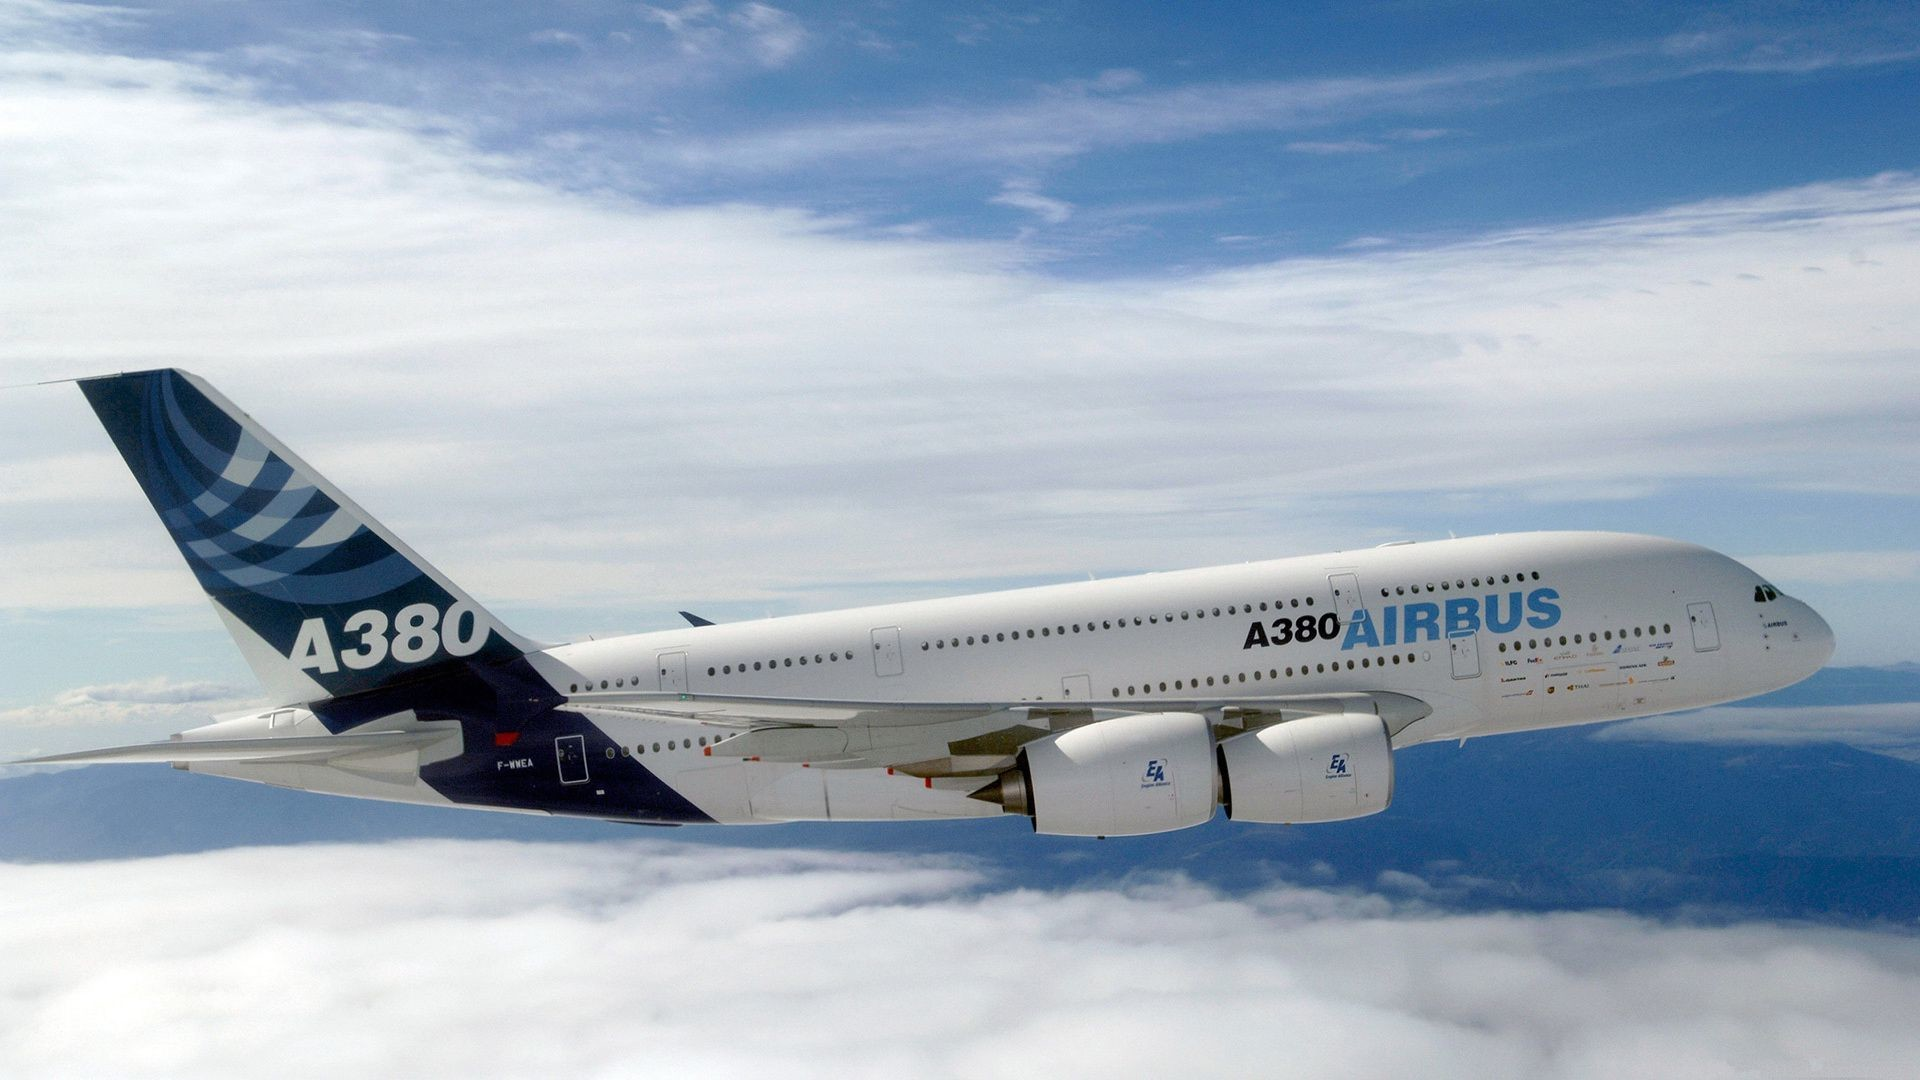 1920x1080 ... Airbus A380 Wallpaper - WallpaperSafari ...